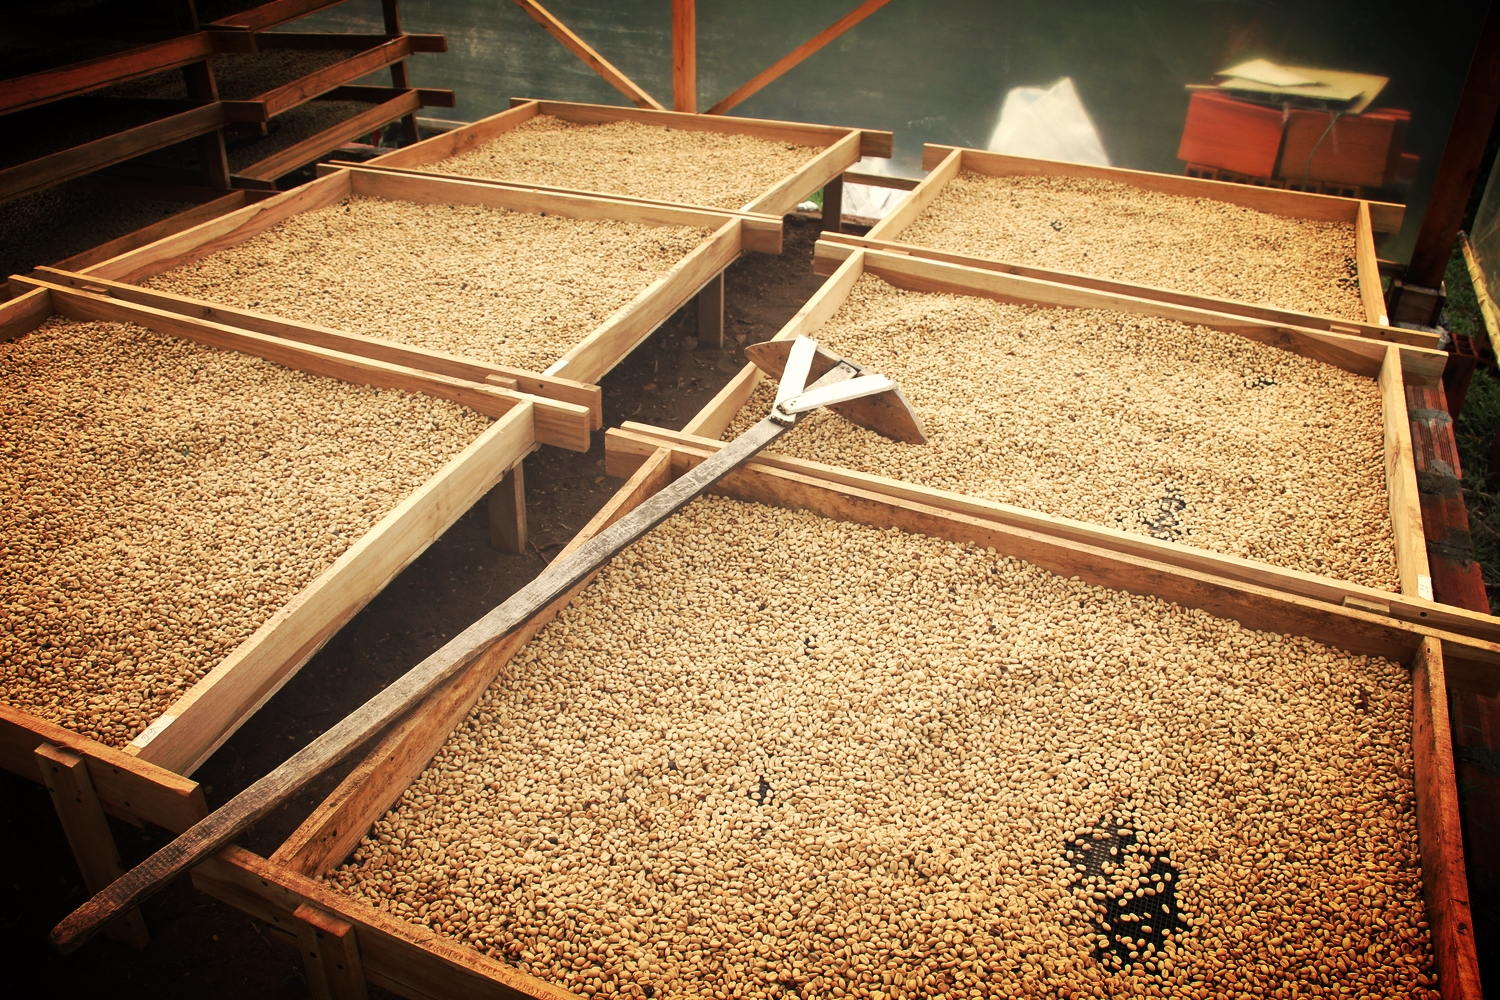 Drying coffee beans...